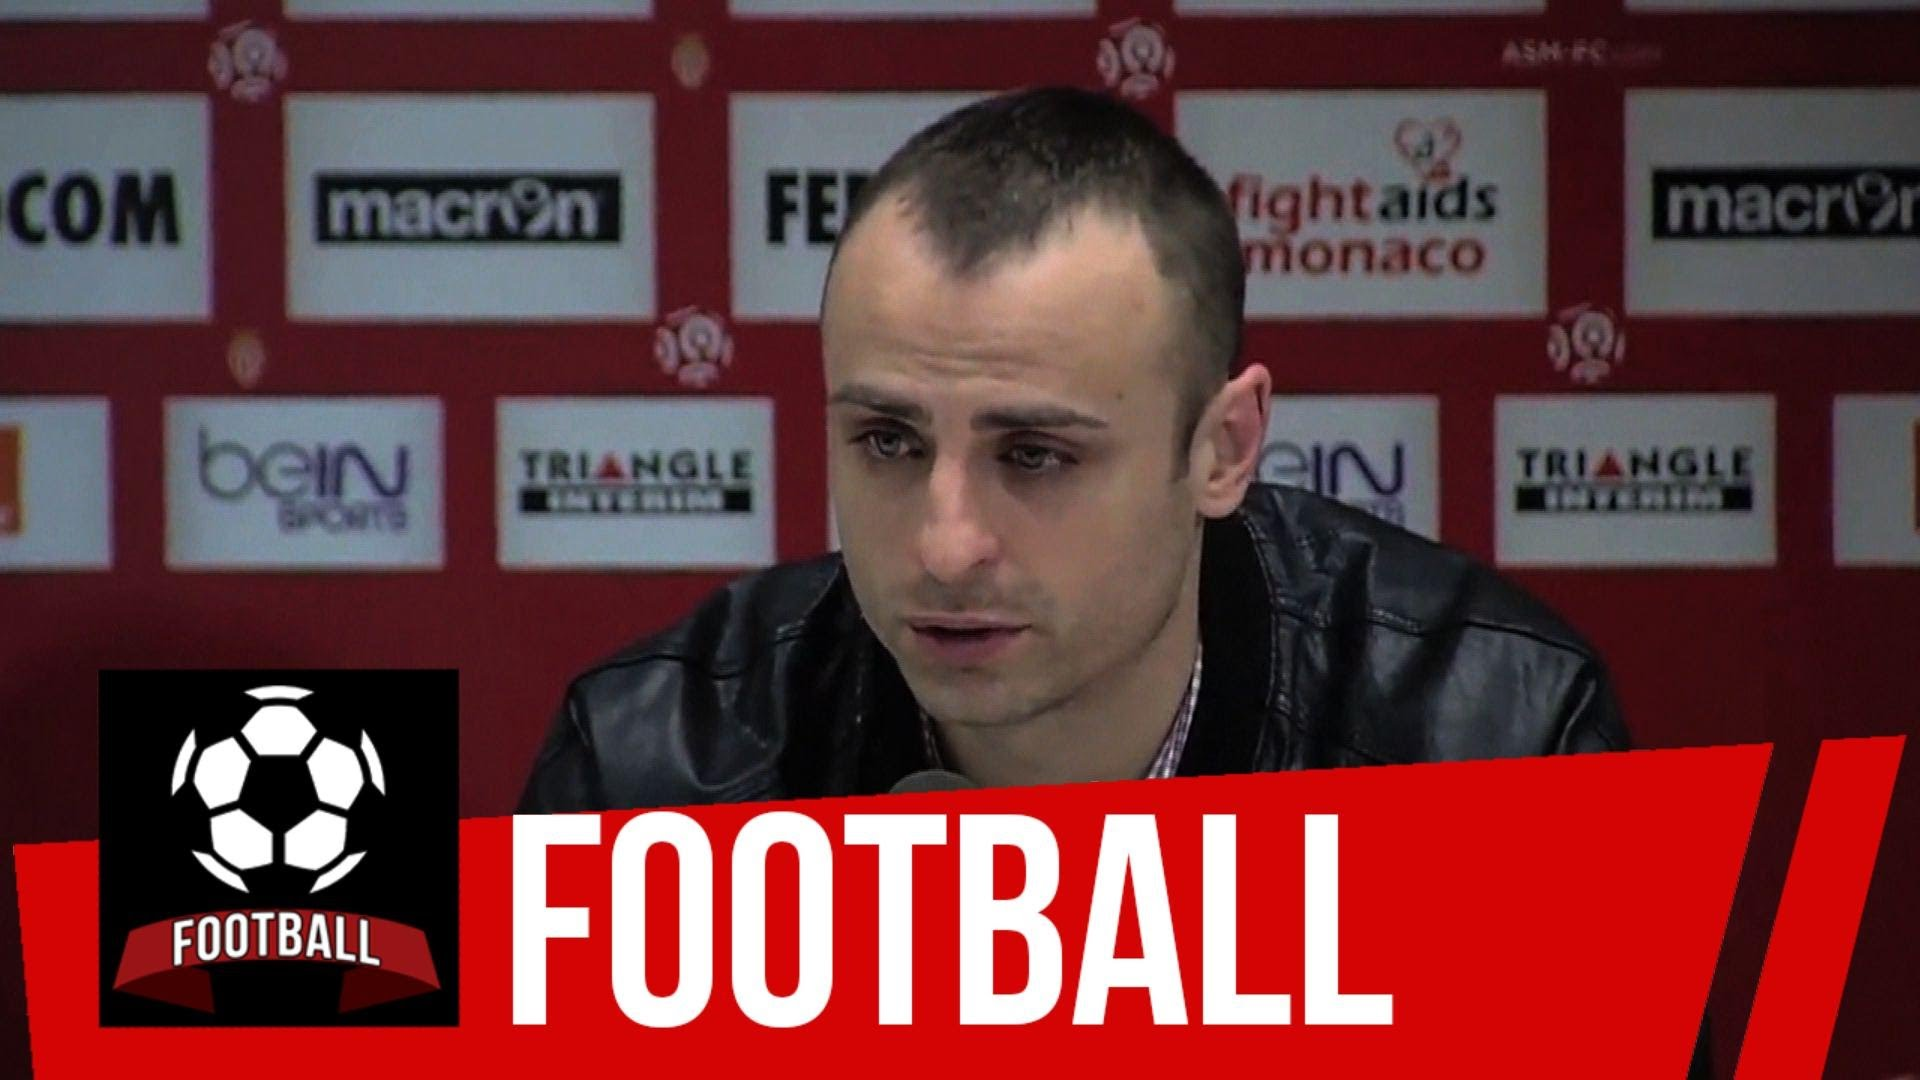 dimitar-berbatov-unveiled-at-monaco